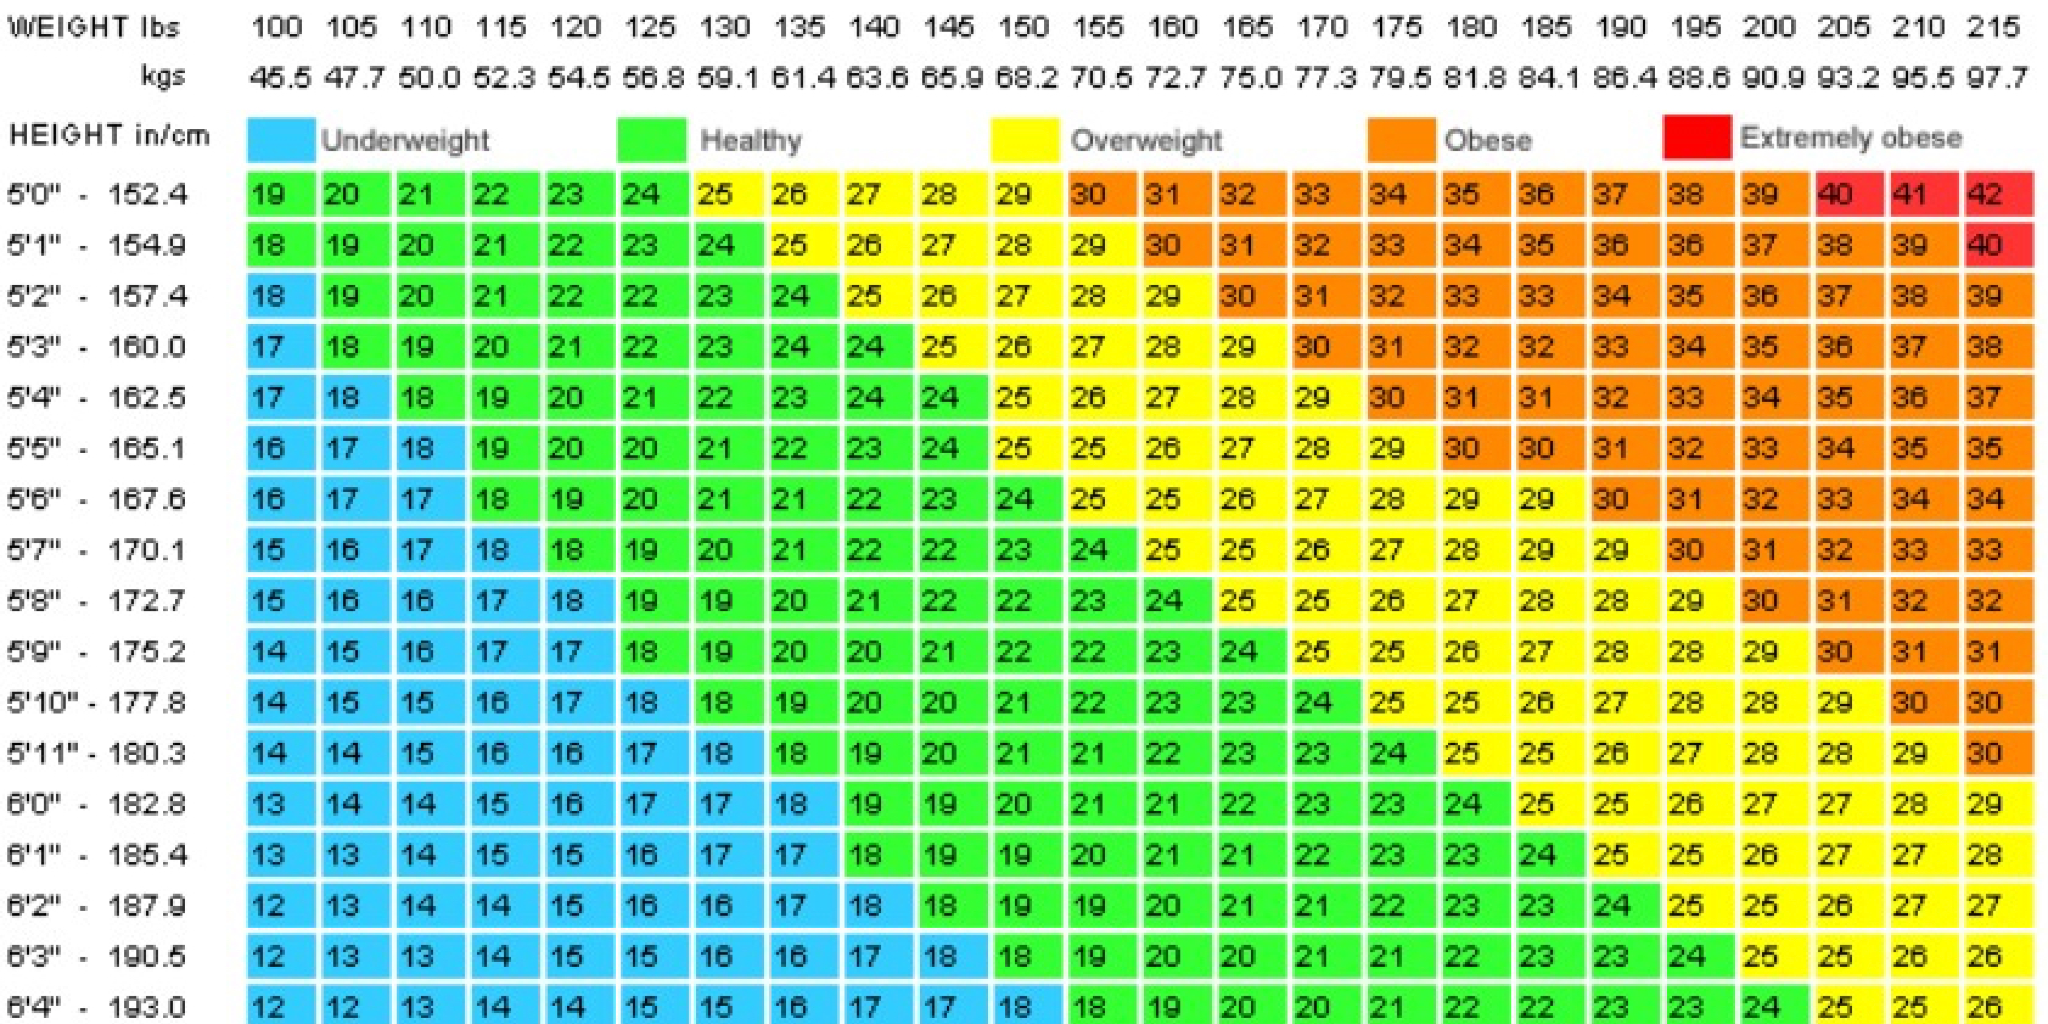 Is The Bmi Chart Bogus If So What Should We Use Instead